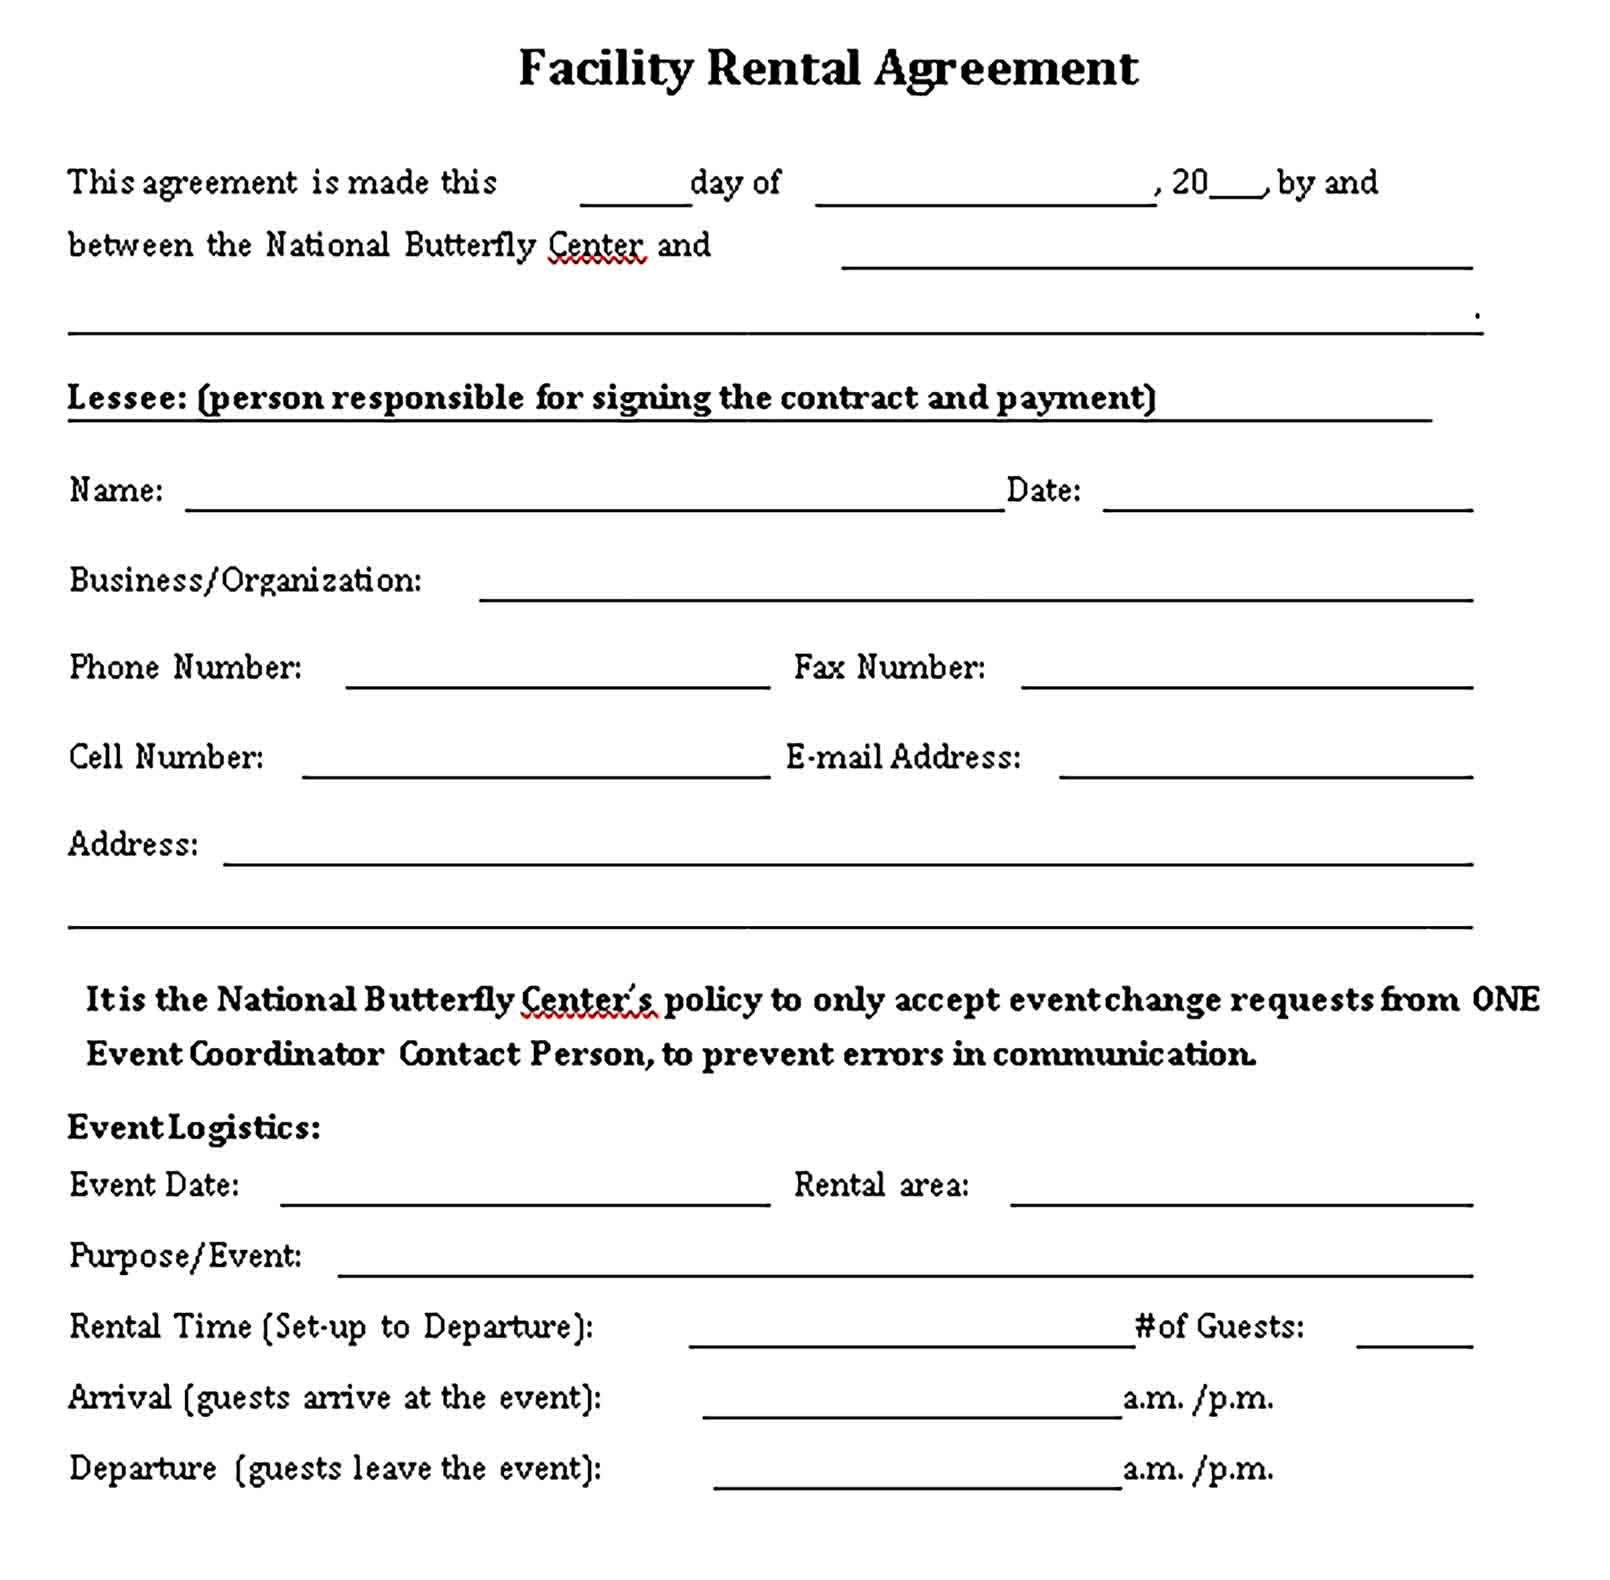 Facility Rental Agreement Template Sample Rental Agreement Templates Business Template Facility